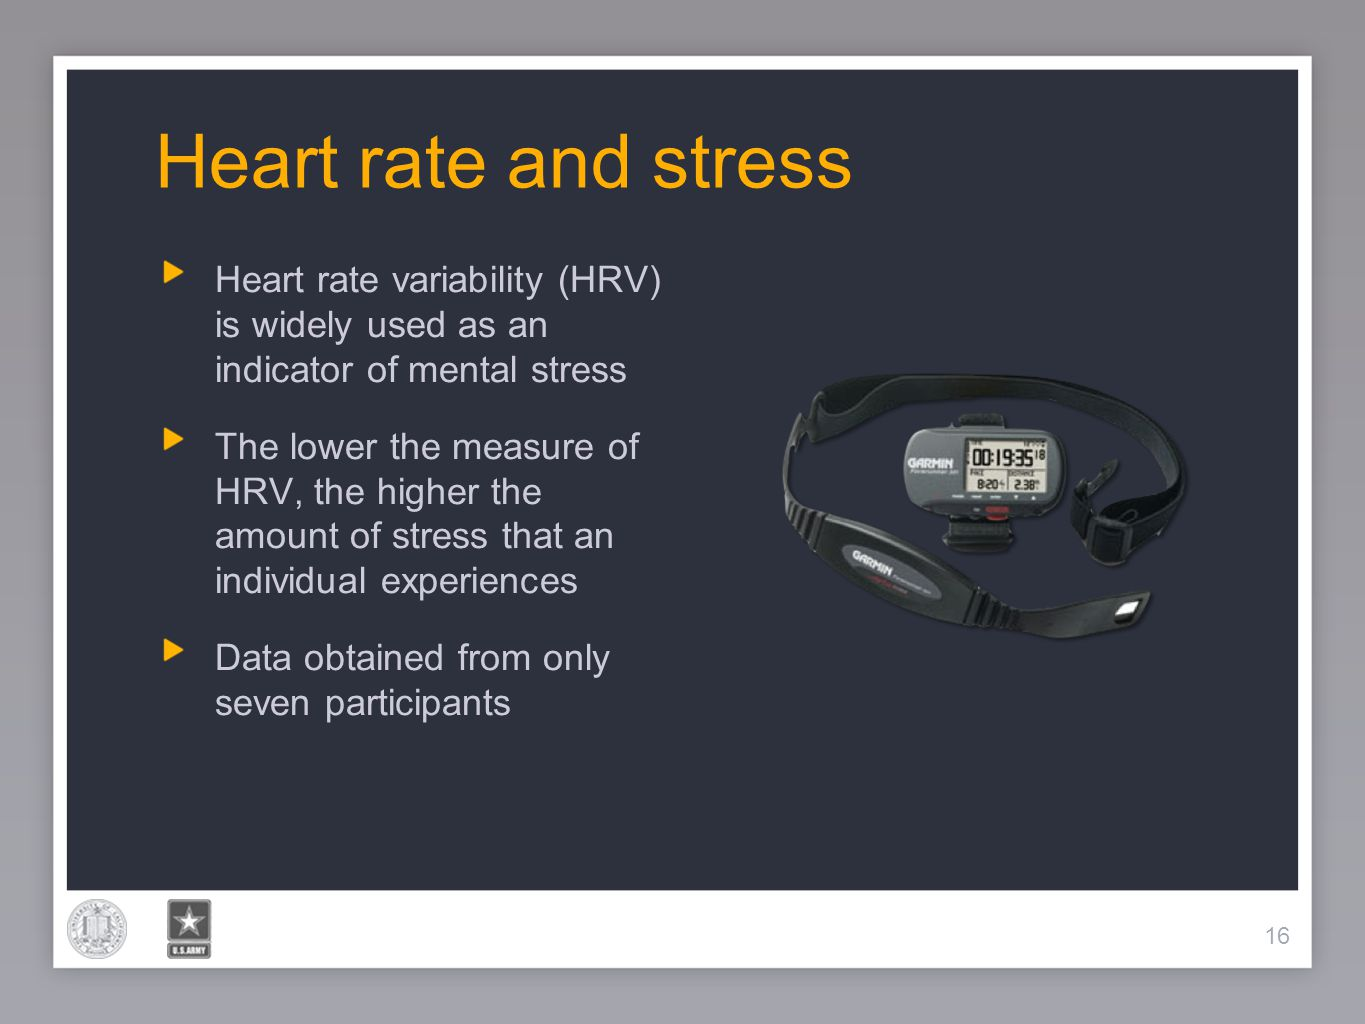 16 Heart rate and stress 16 Heart rate variability (HRV) is widely used as an indicator of mental stress The lower the measure of HRV, the higher the